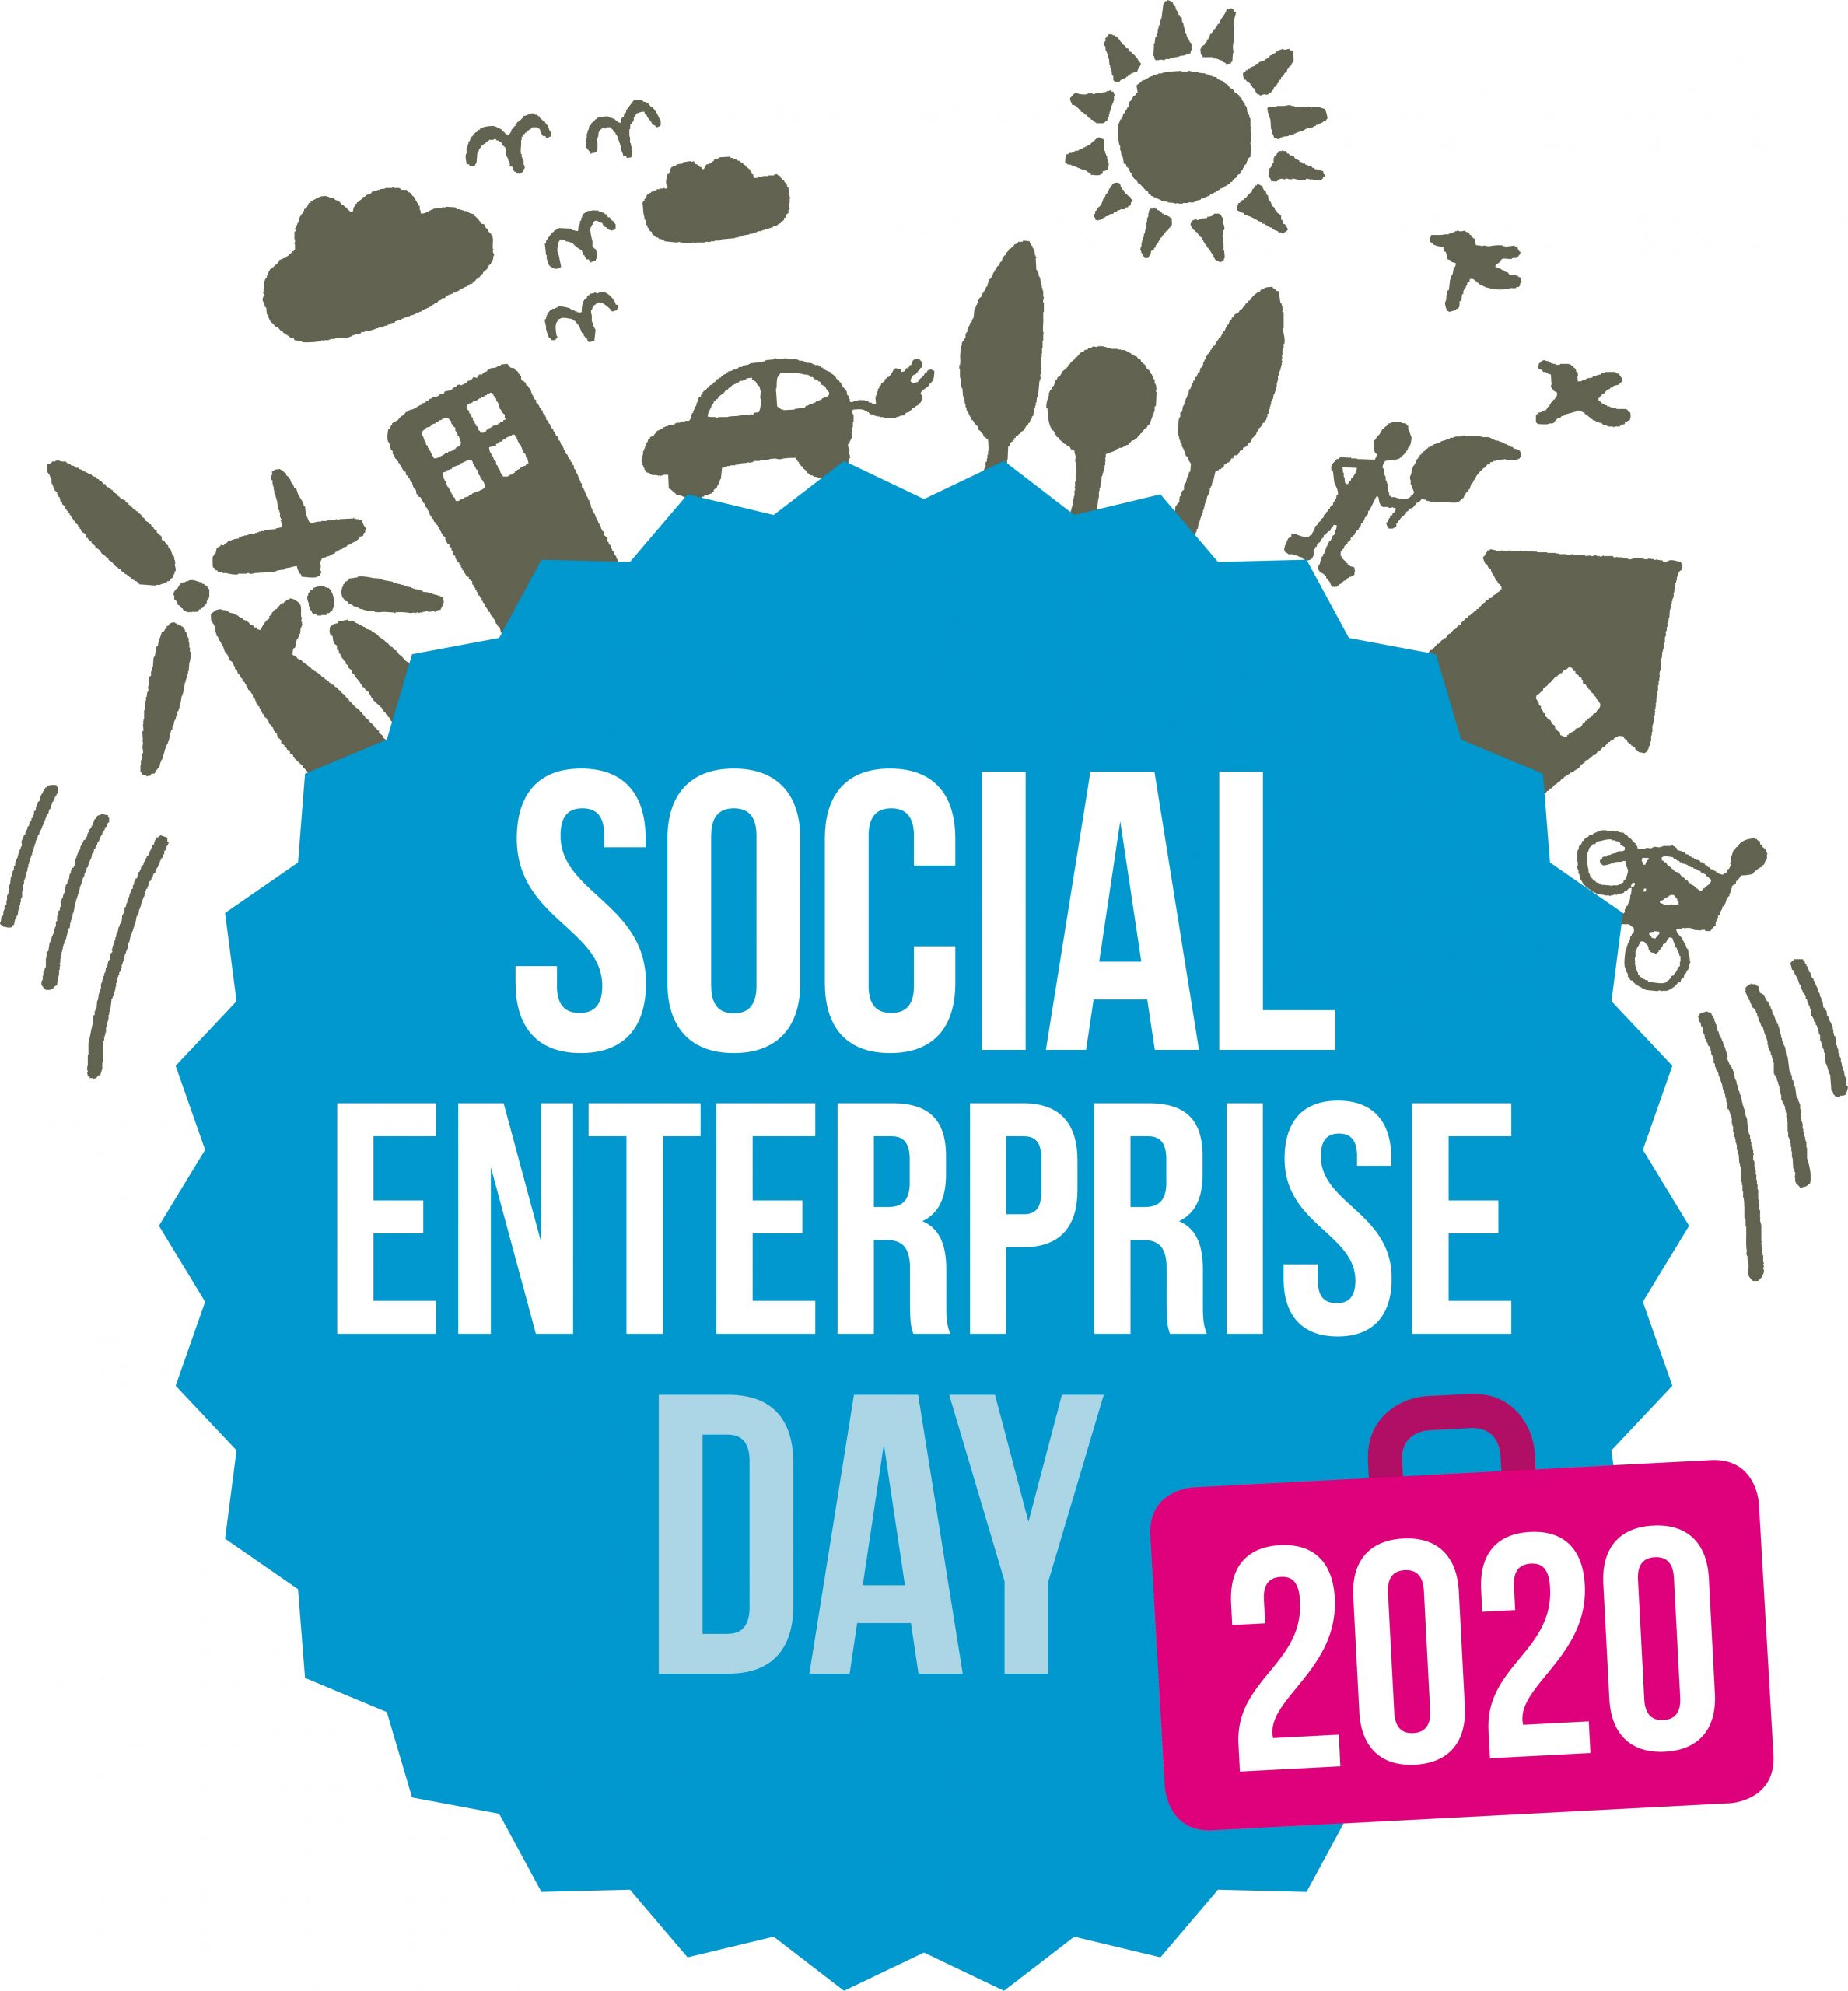 Workshop Challenges of Community Entrepreneurship – Social Enterprise Day 2020